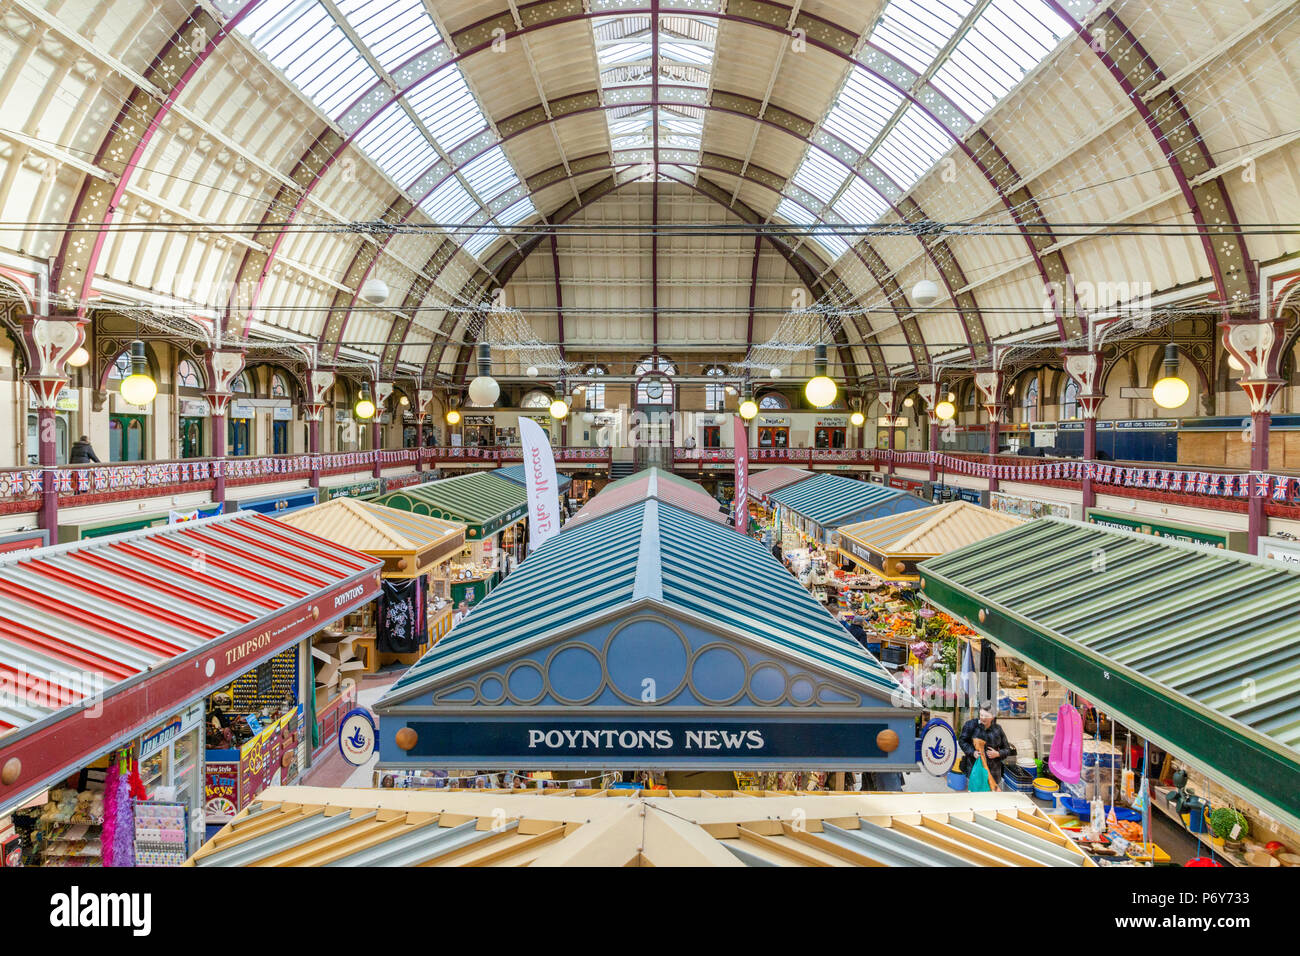 19th century architecture. The Victorian Grade II listed building interior of Derby Market Hall, Derby, England, UK - Stock Image